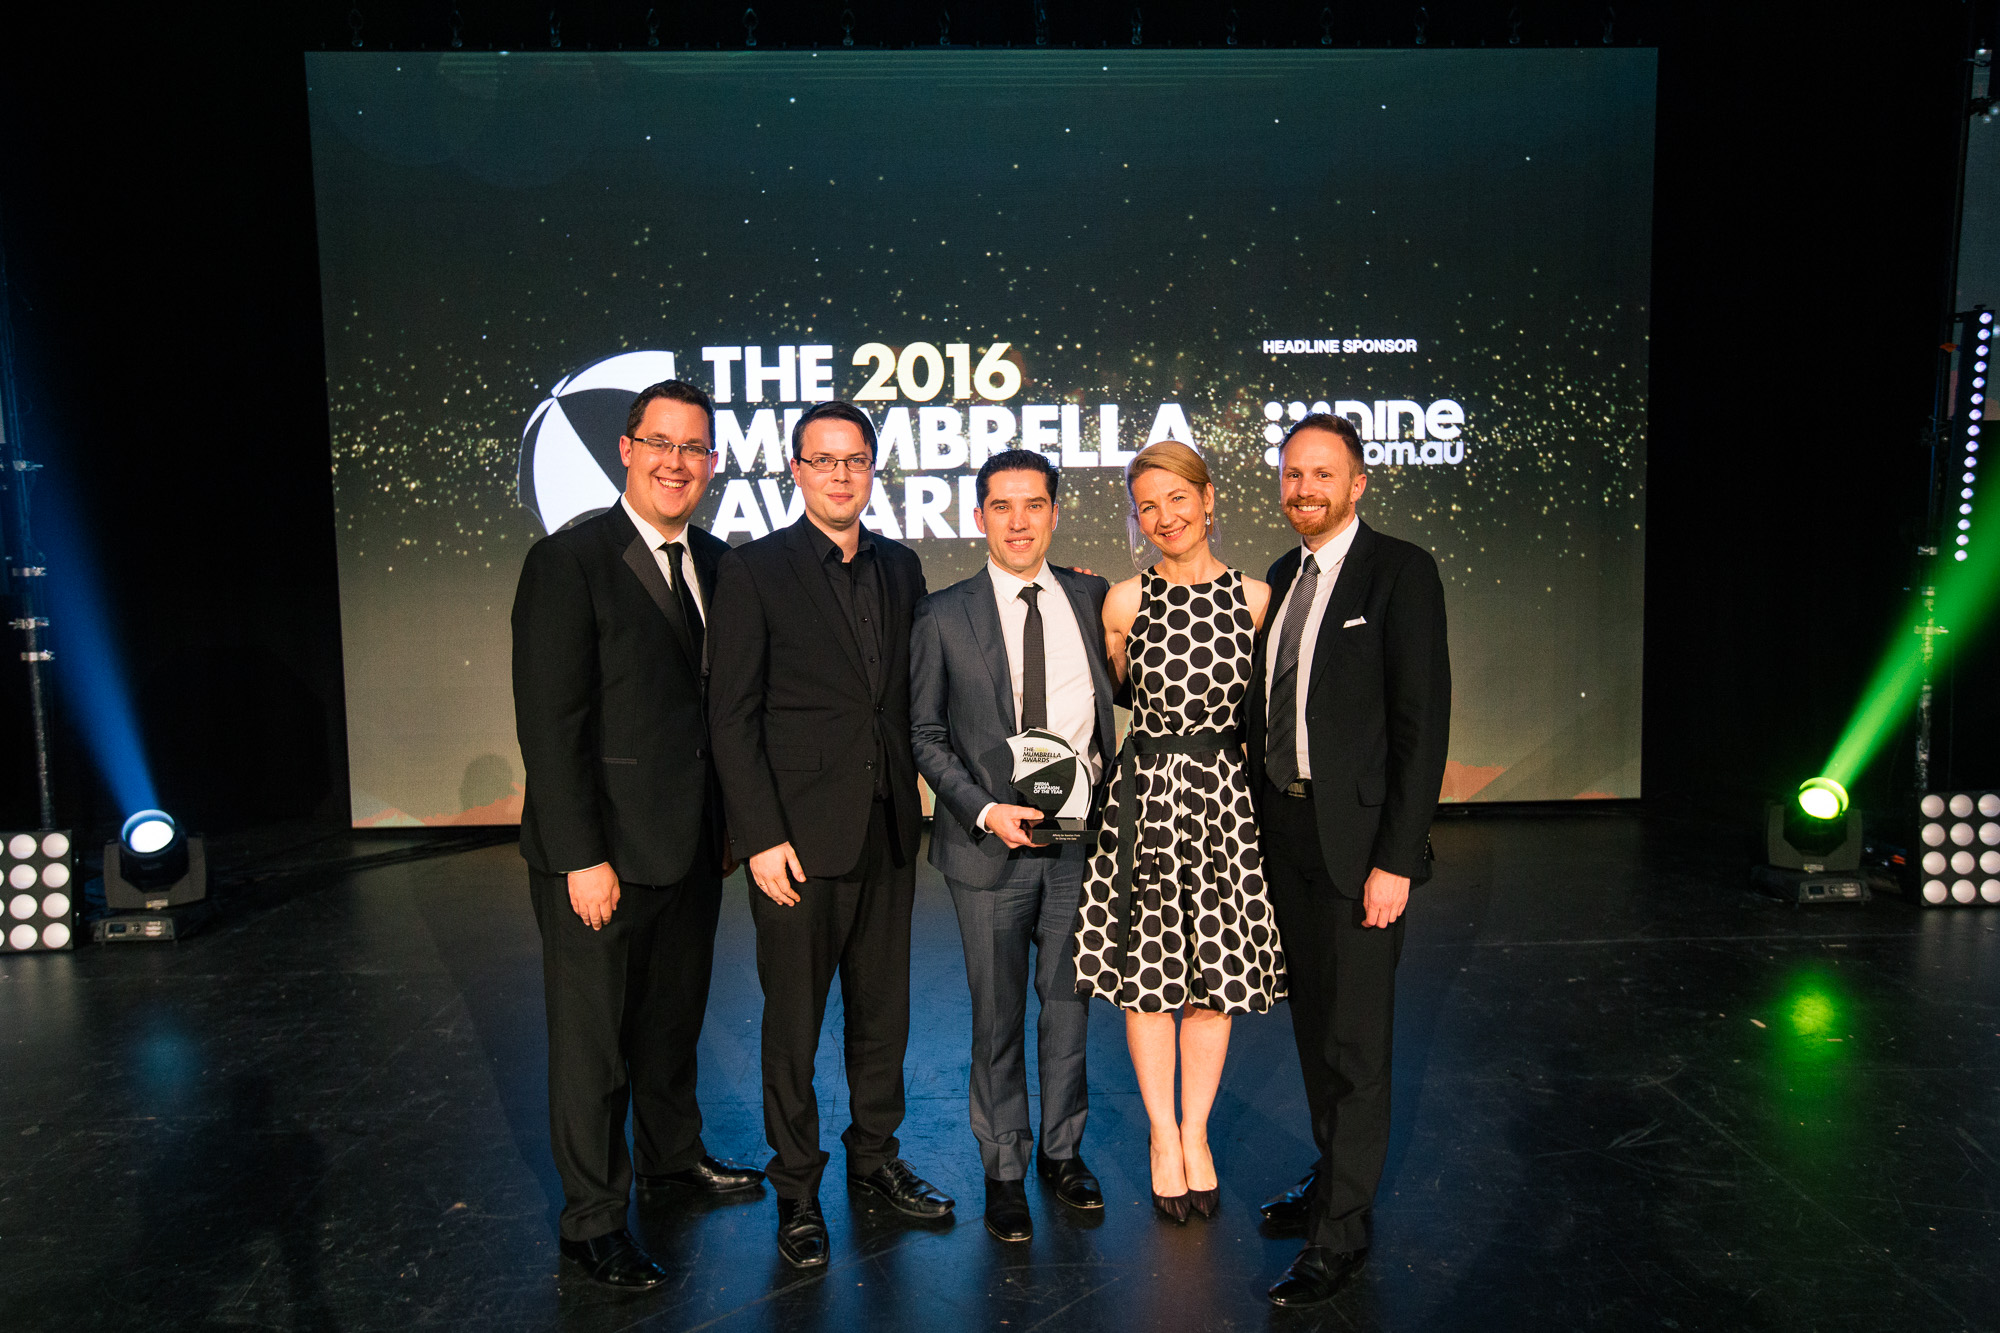 Mumbrella Awards 2016: AFFINITY wins best Media Campaign of the Year